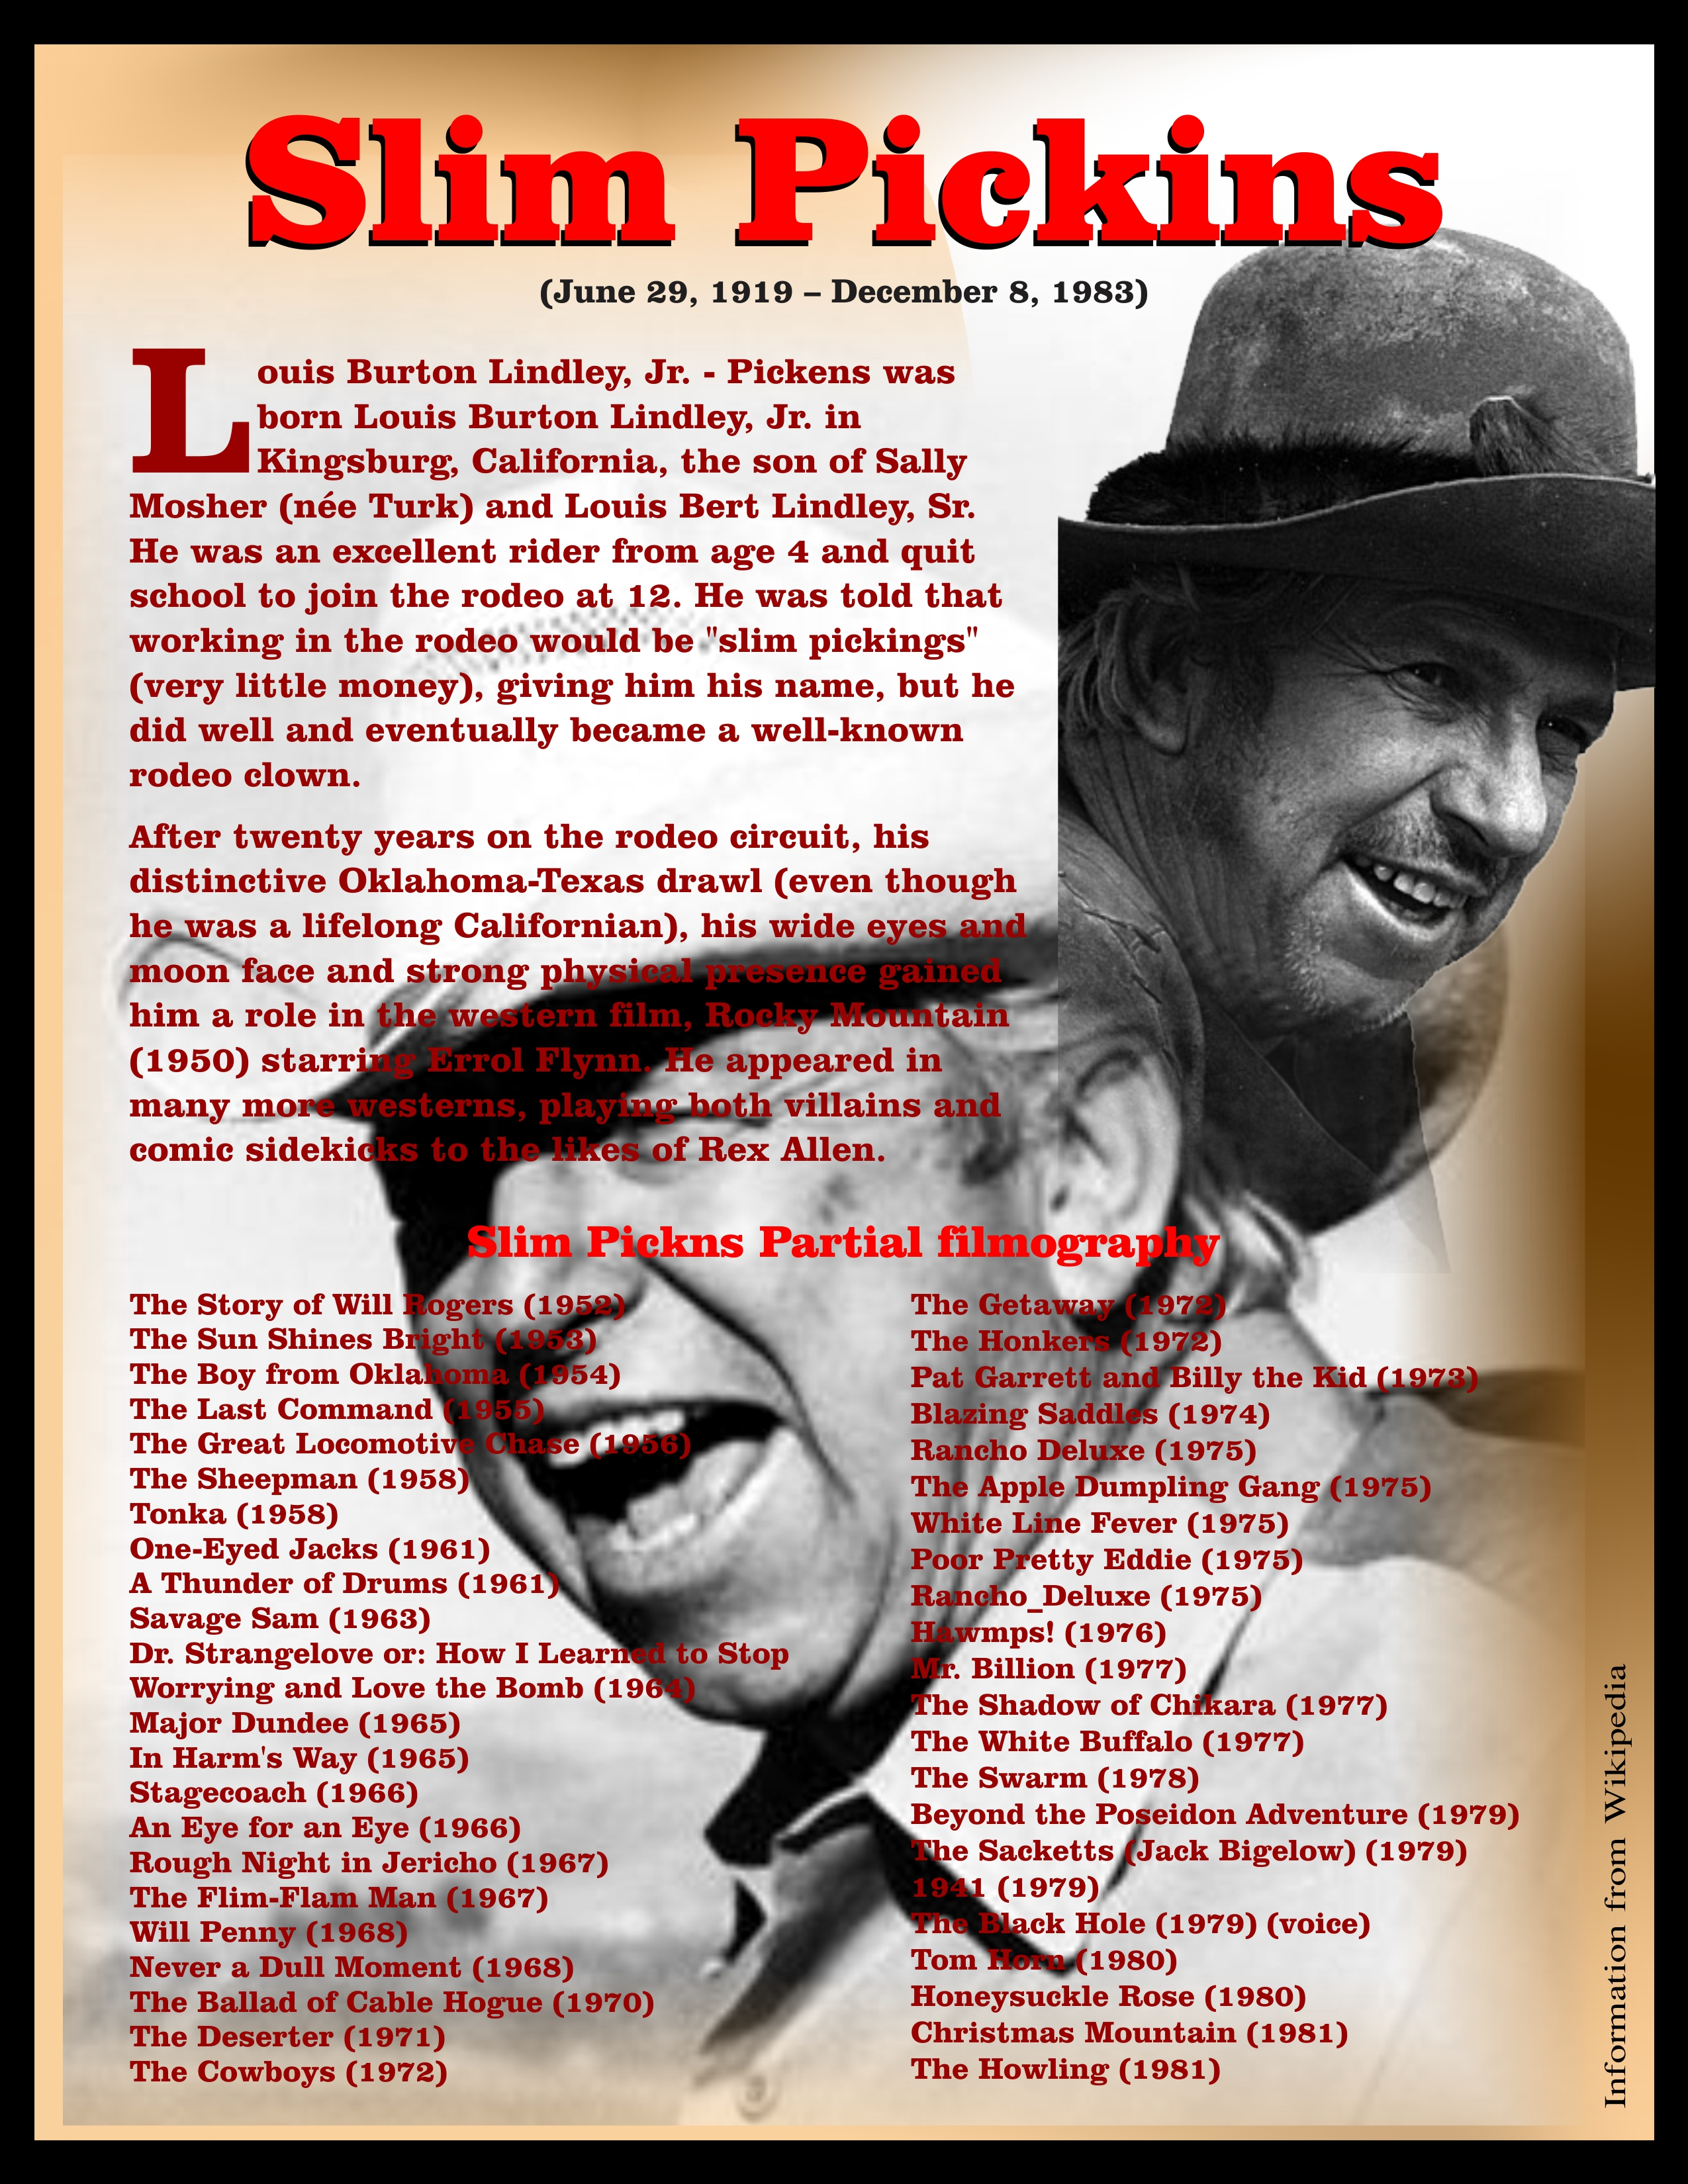 slim pickens lyrics